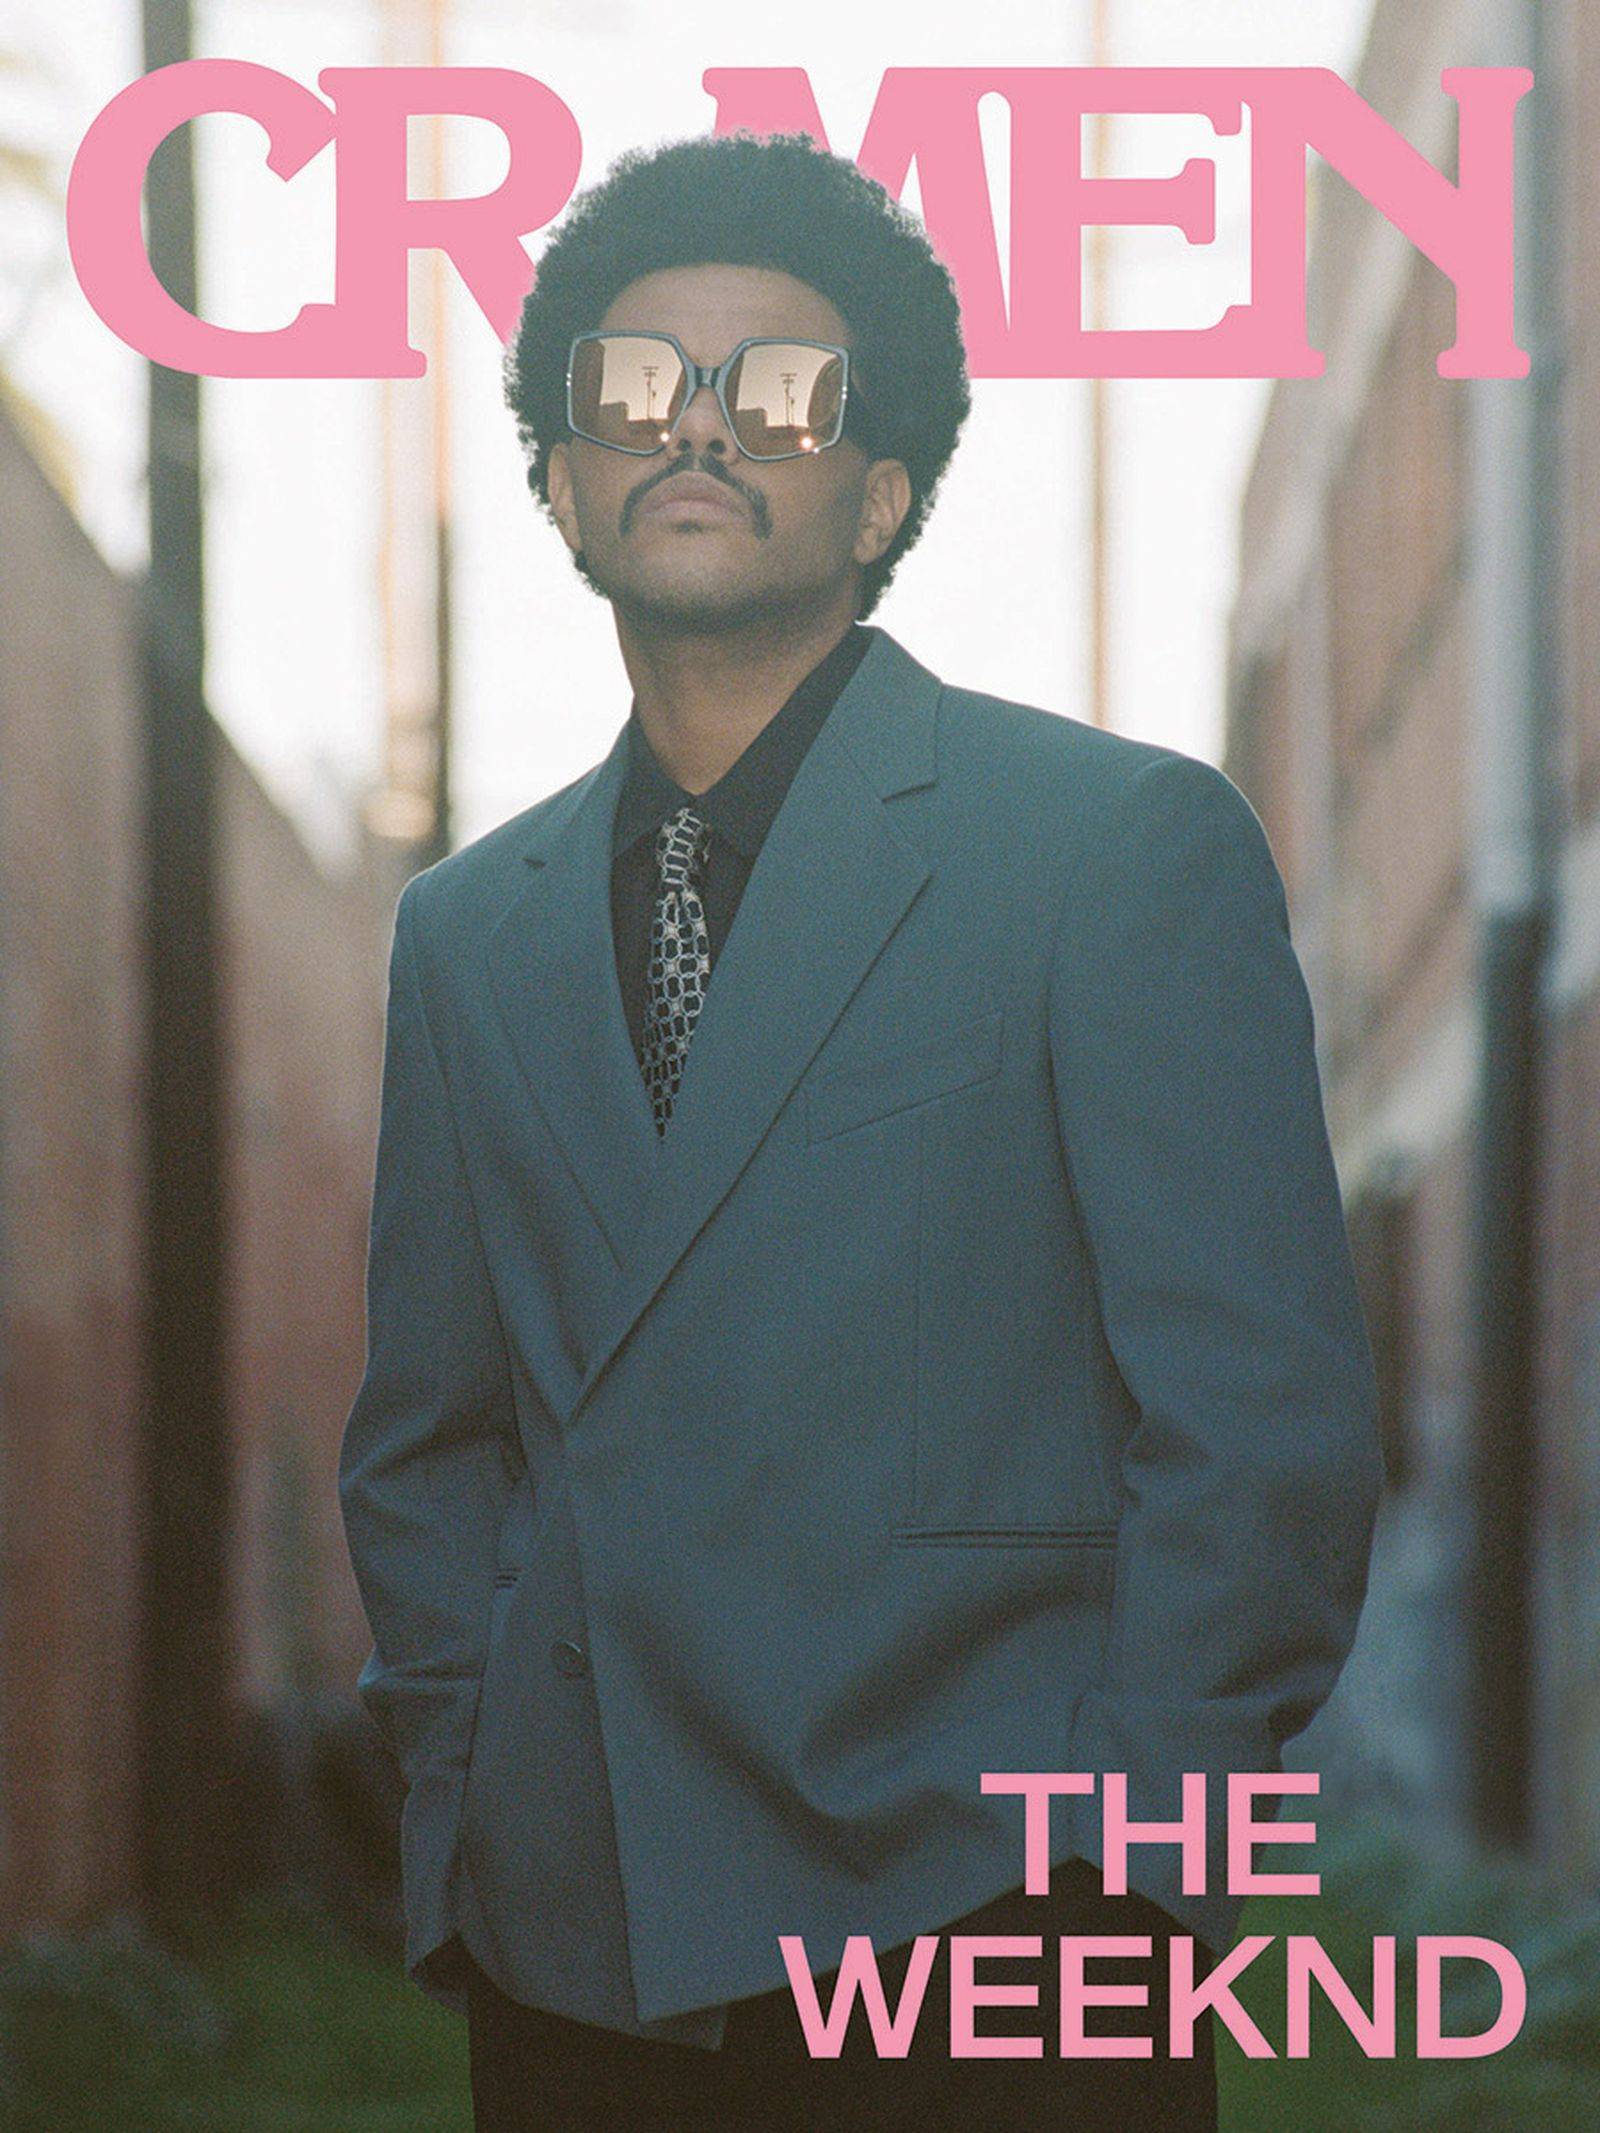 The Weeknd CR Men cover